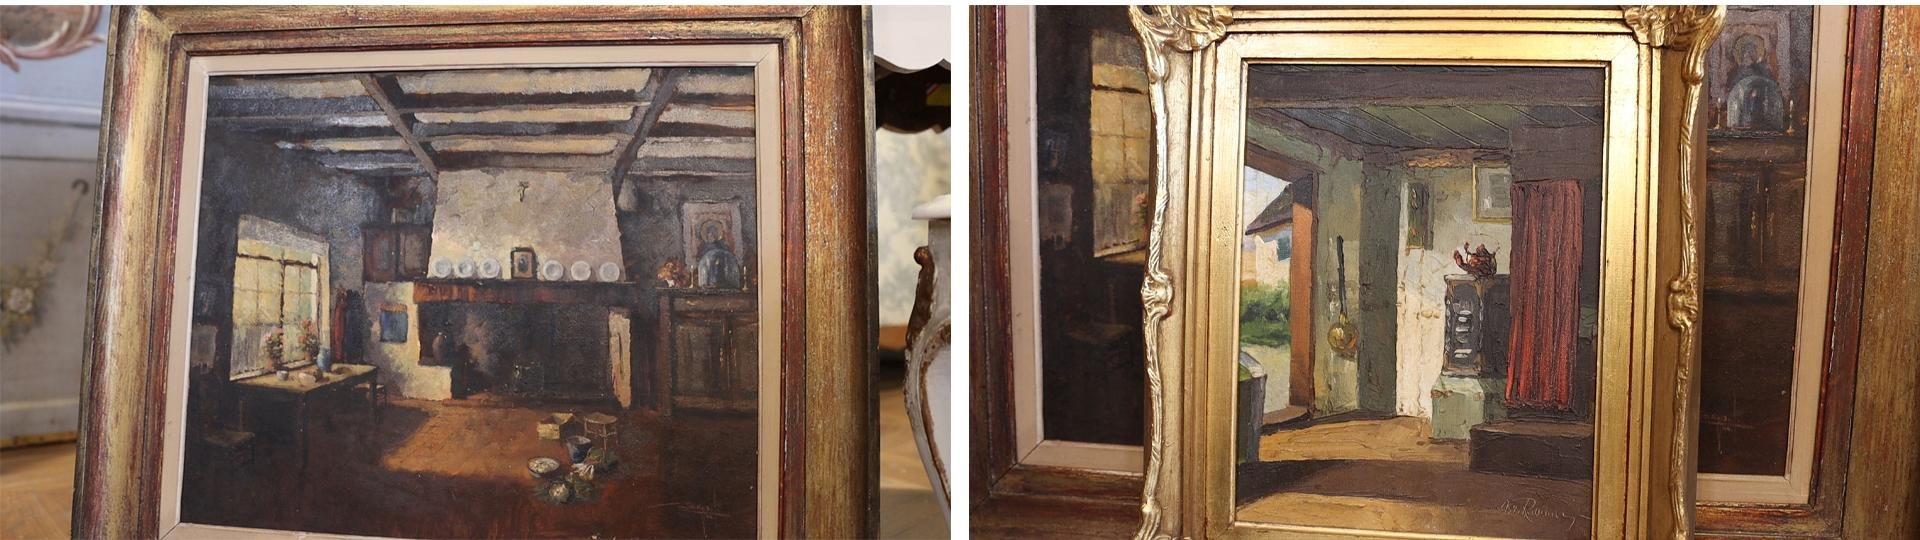 I picked up two dark, earthy home scene antique decor oil paintings from the Round Top Antique show.